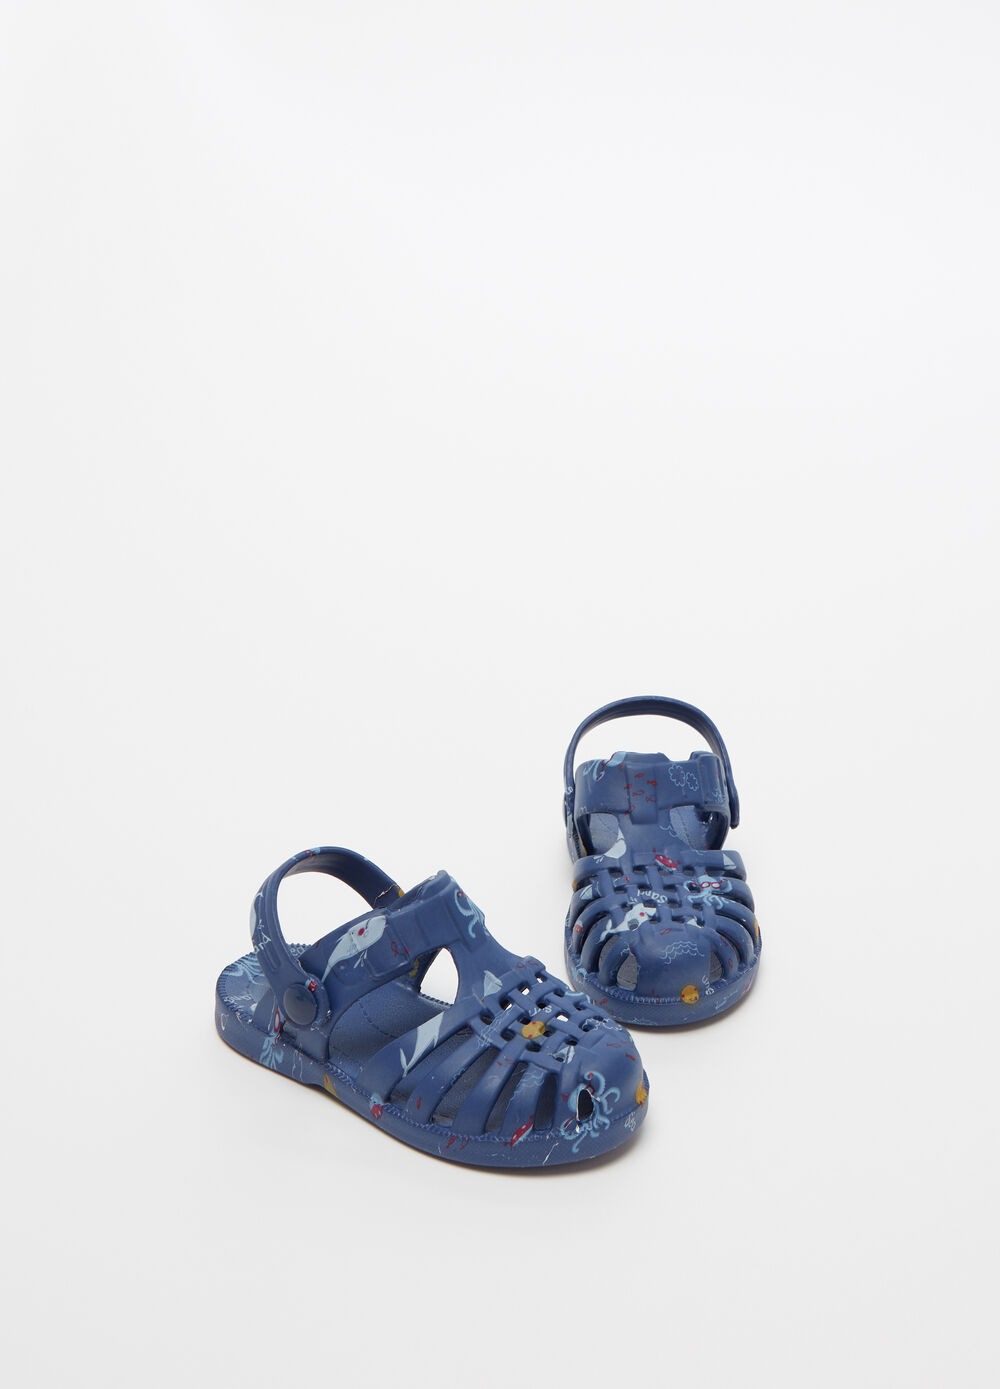 Strappy sandals with marine motif pattern